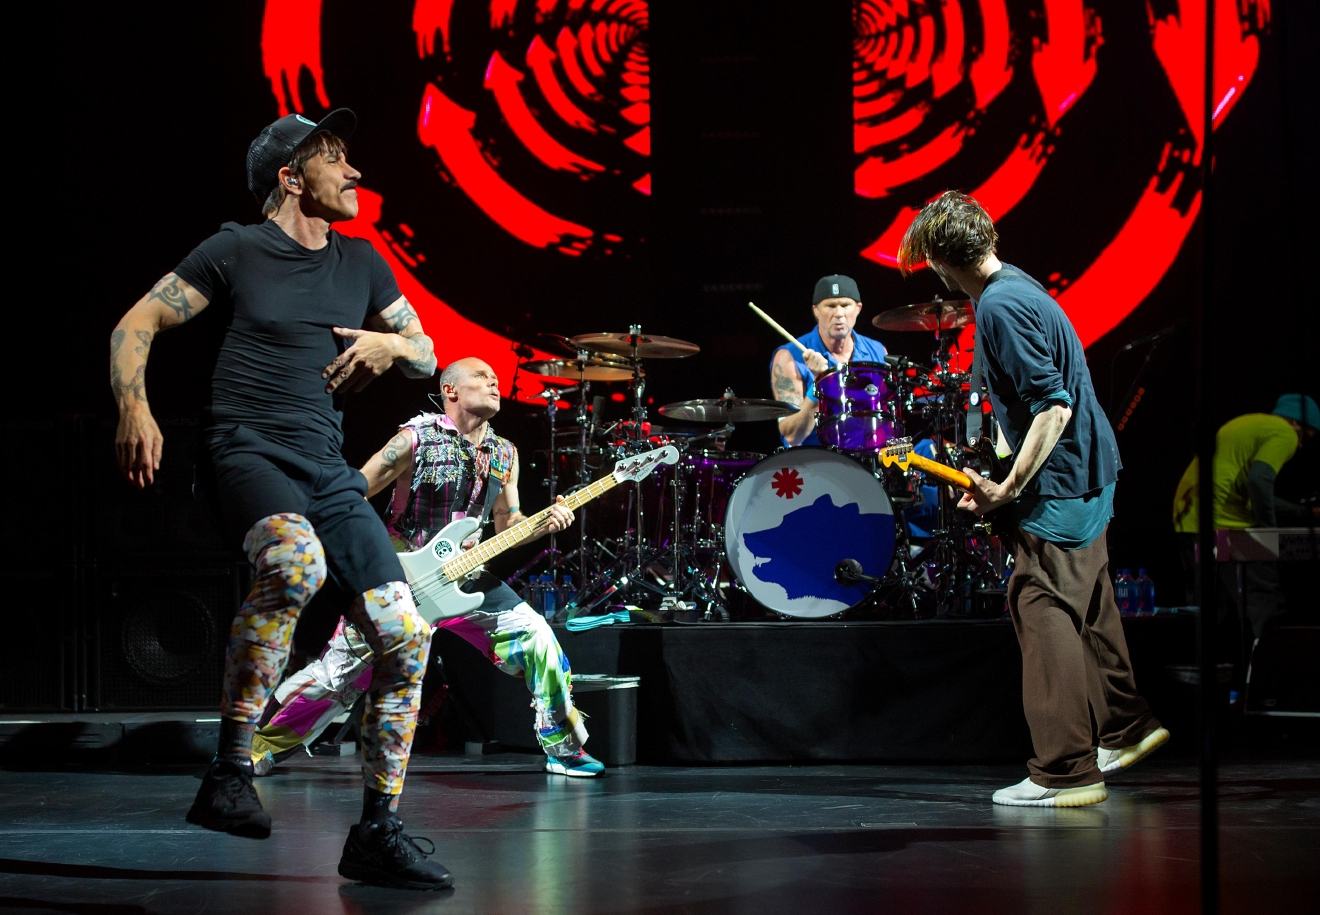 (Left to right) Lead singer Anthony Kiedis, bassist Flea, drummer Chad Smith, and guitarist Josh Klinghoffer, during the Red Hot Chili Peppers' performance at KeyArena. (Sy Bean / Seattle Refined)